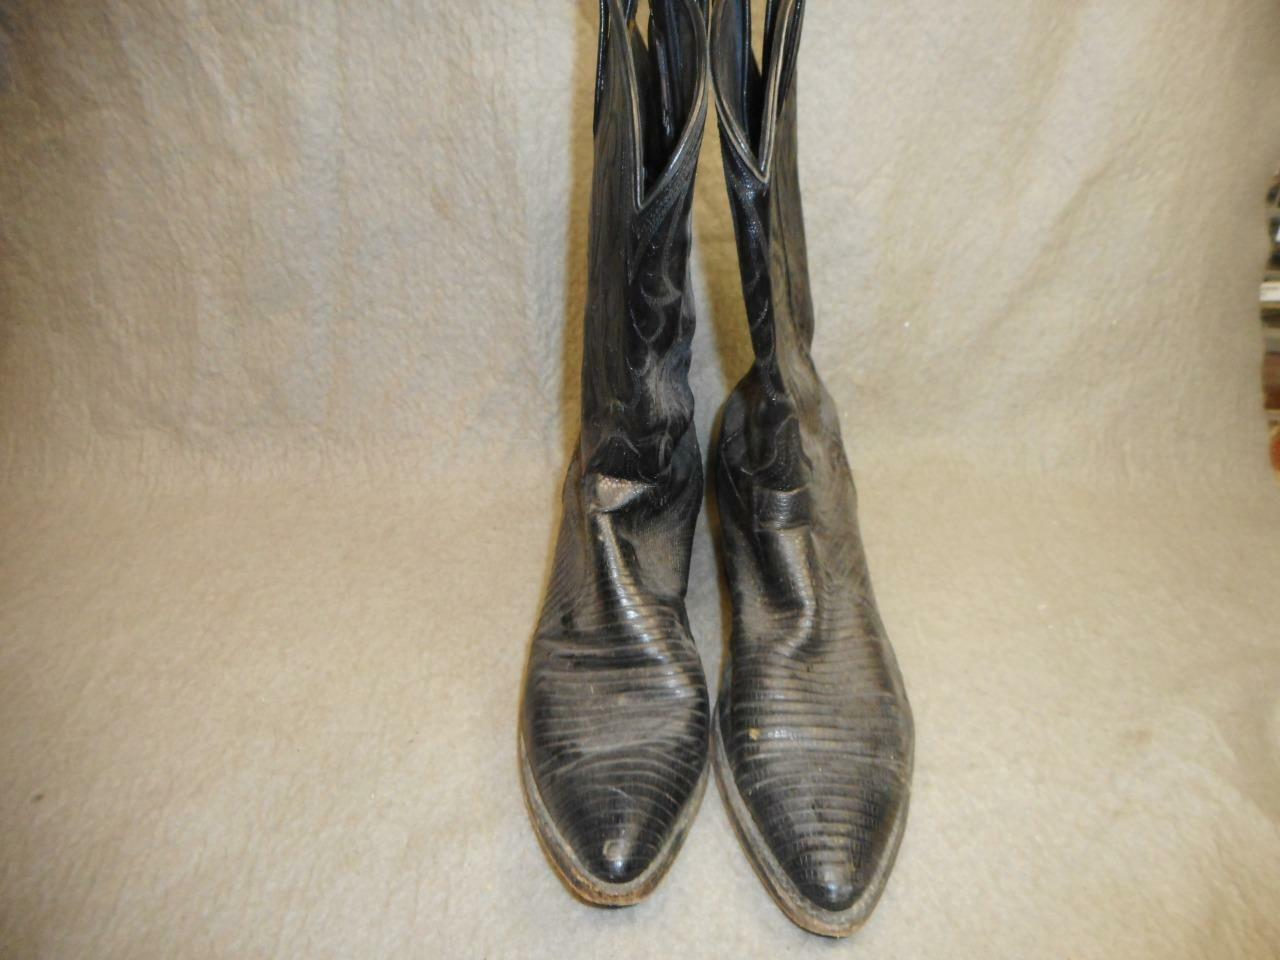 WOMEN'S DAN POST BLACK COWGIRL BOOTS  SIZE 7 M  USED N R